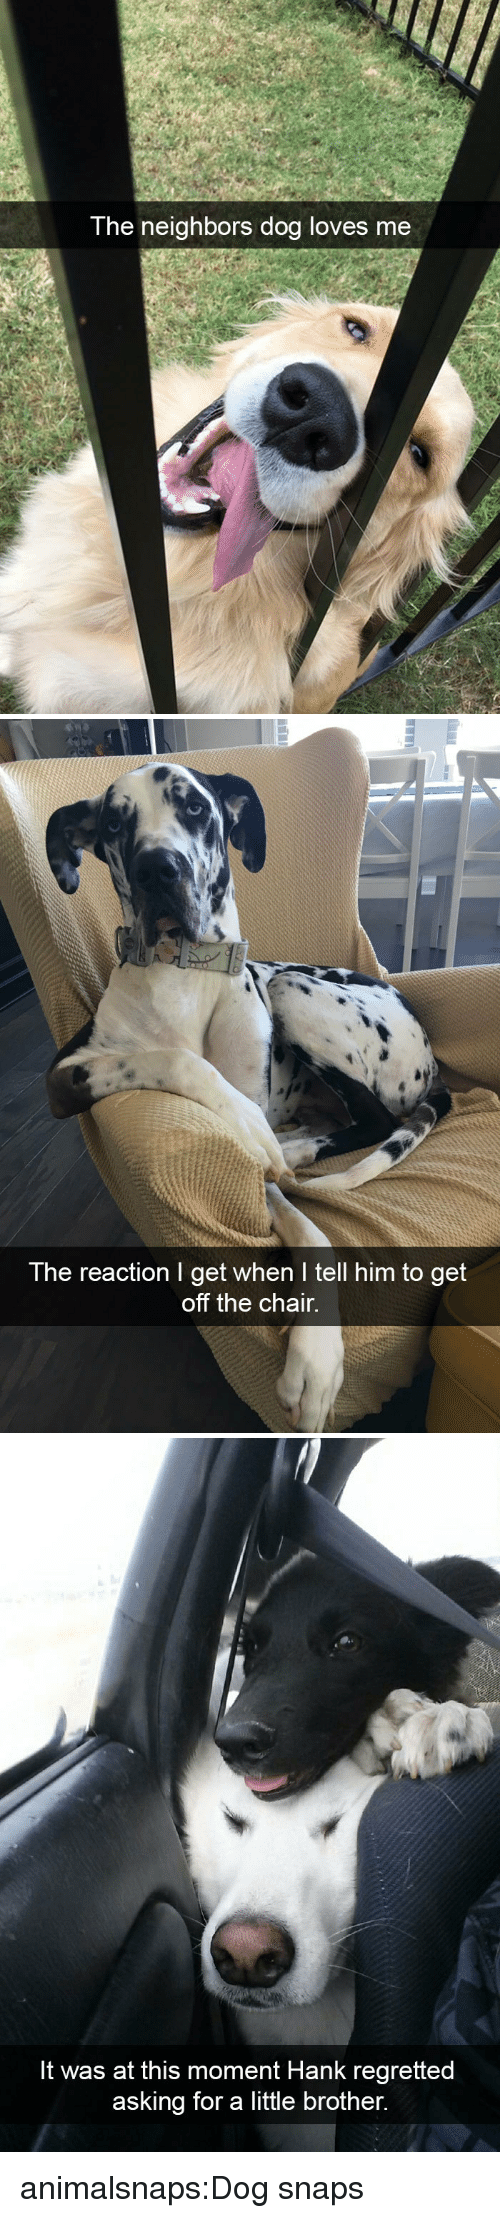 Target, Tumblr, and Blog: The neighbors doa loves me   The reaction I get when I tell him to get  off the chair.   It was at this moment Hank regretted  asking for a little brother. animalsnaps:Dog snaps